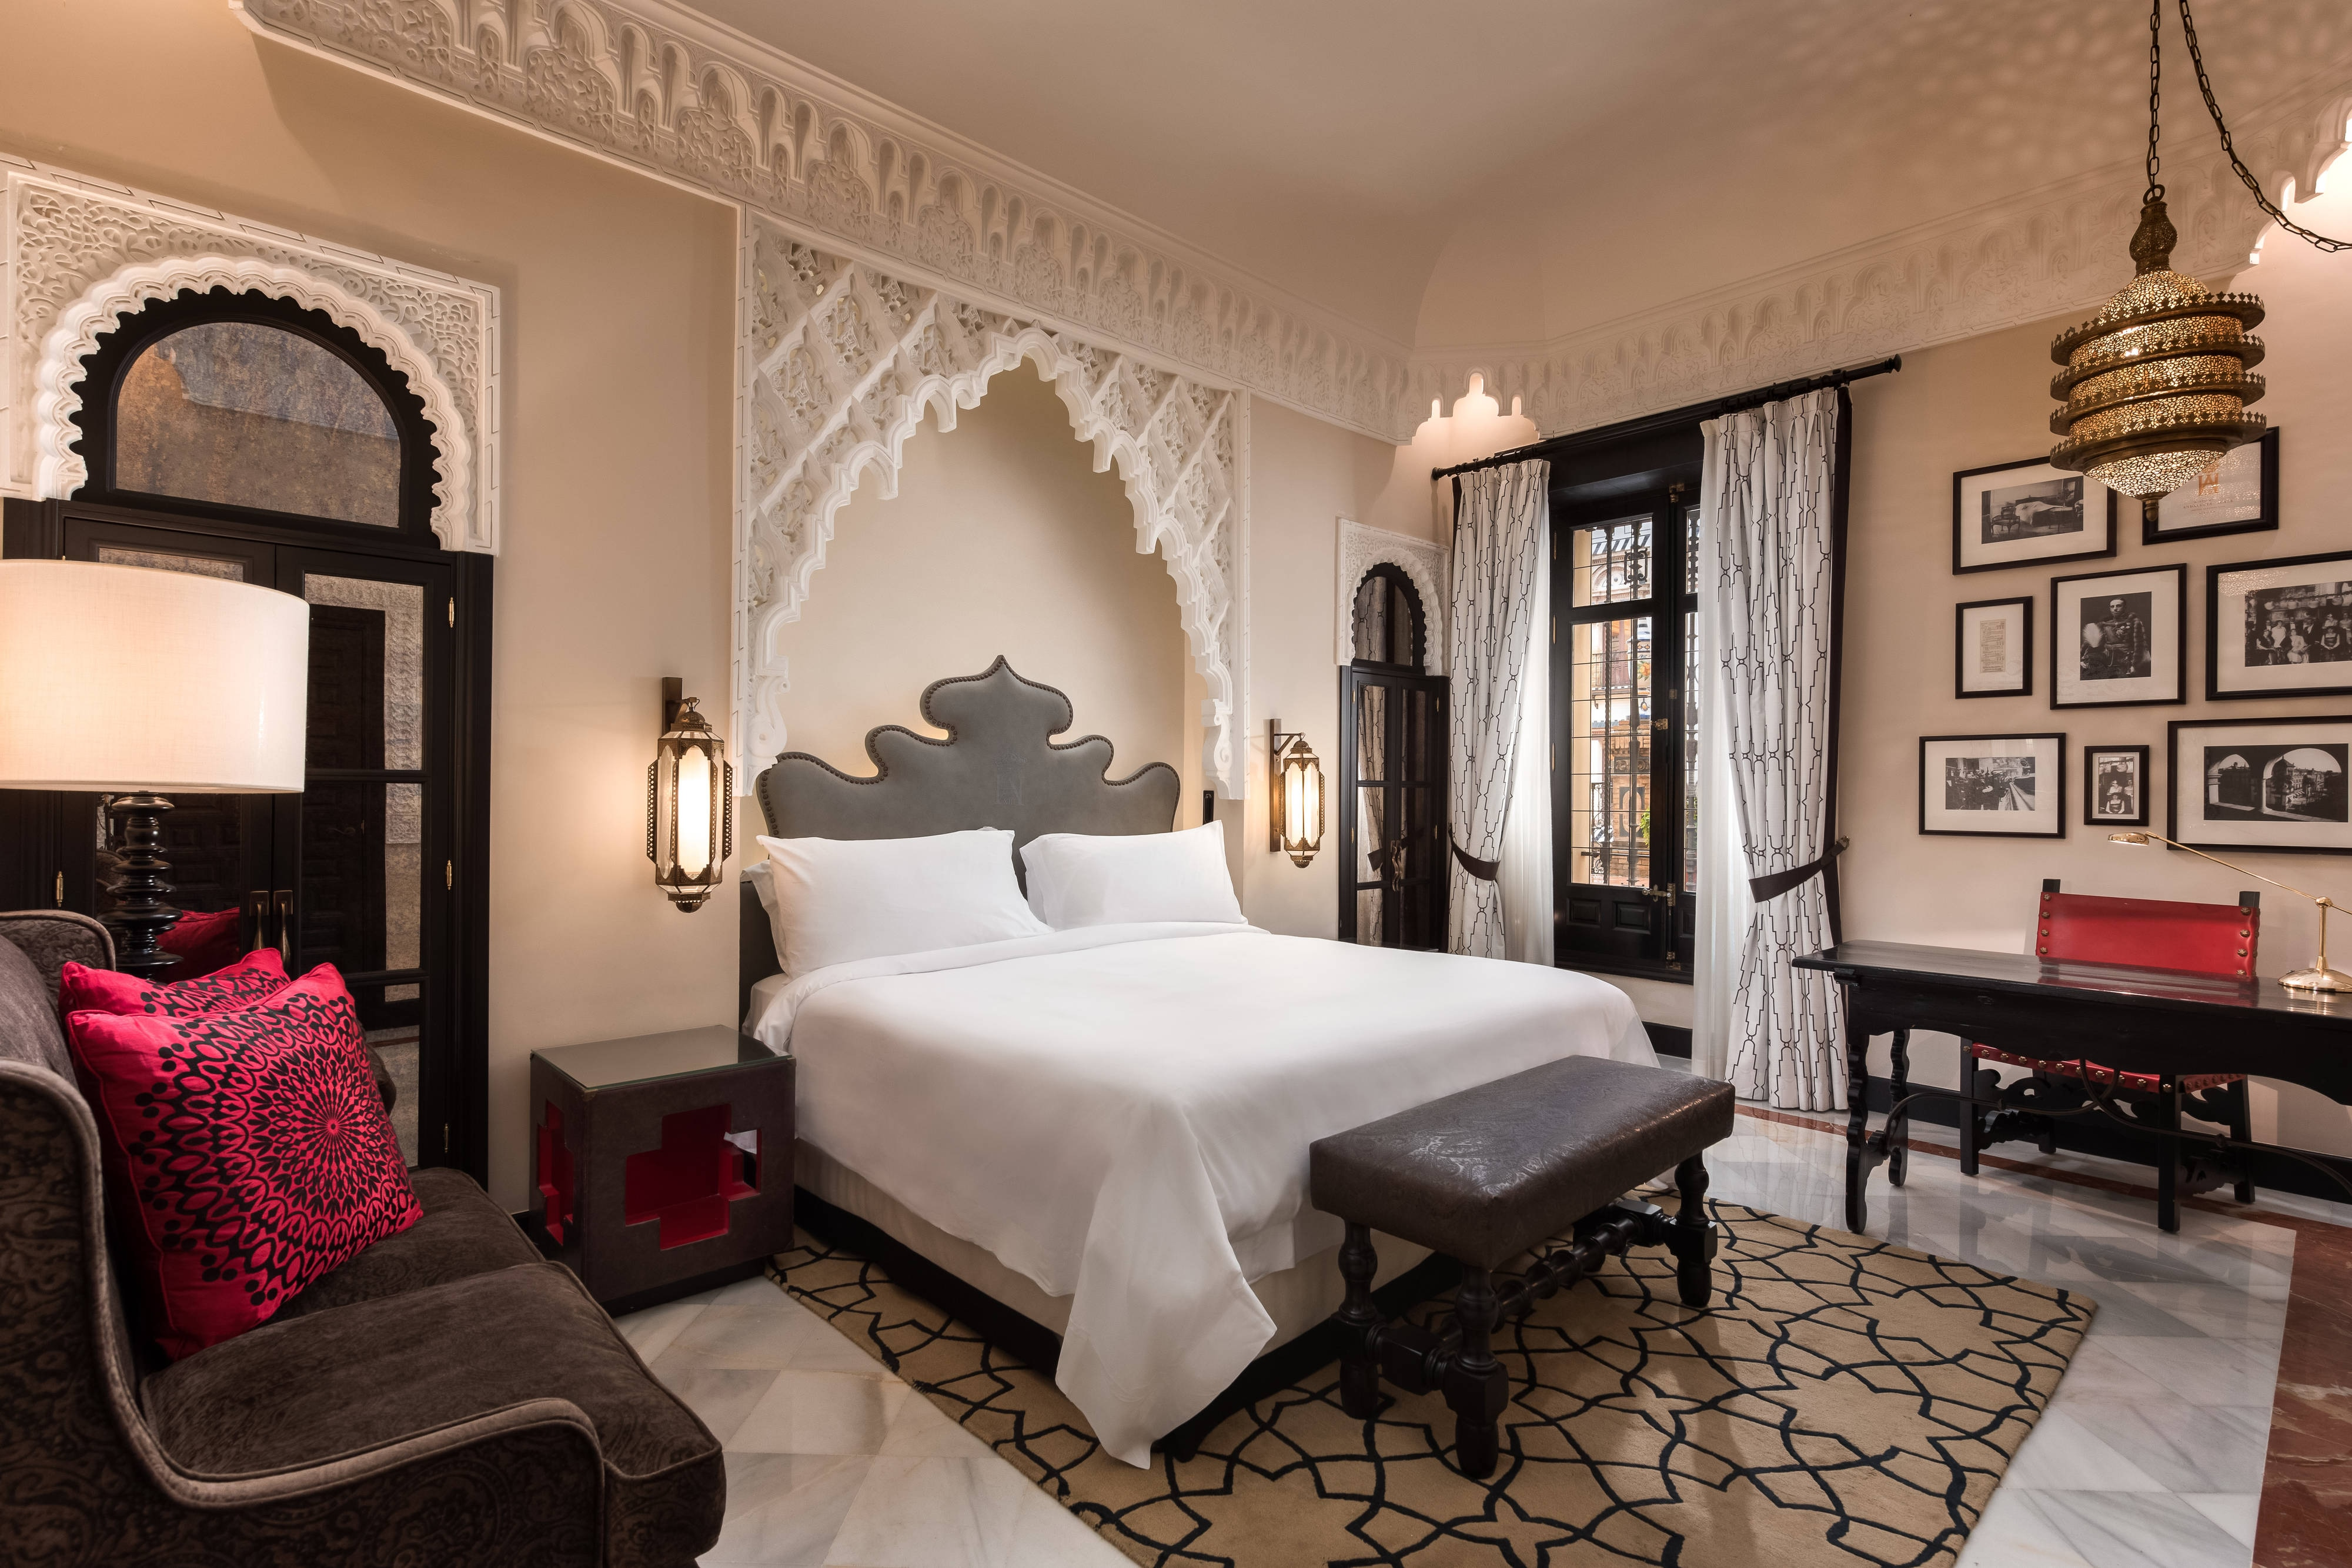 MOORISH STYLE GRAND DELUXE Room